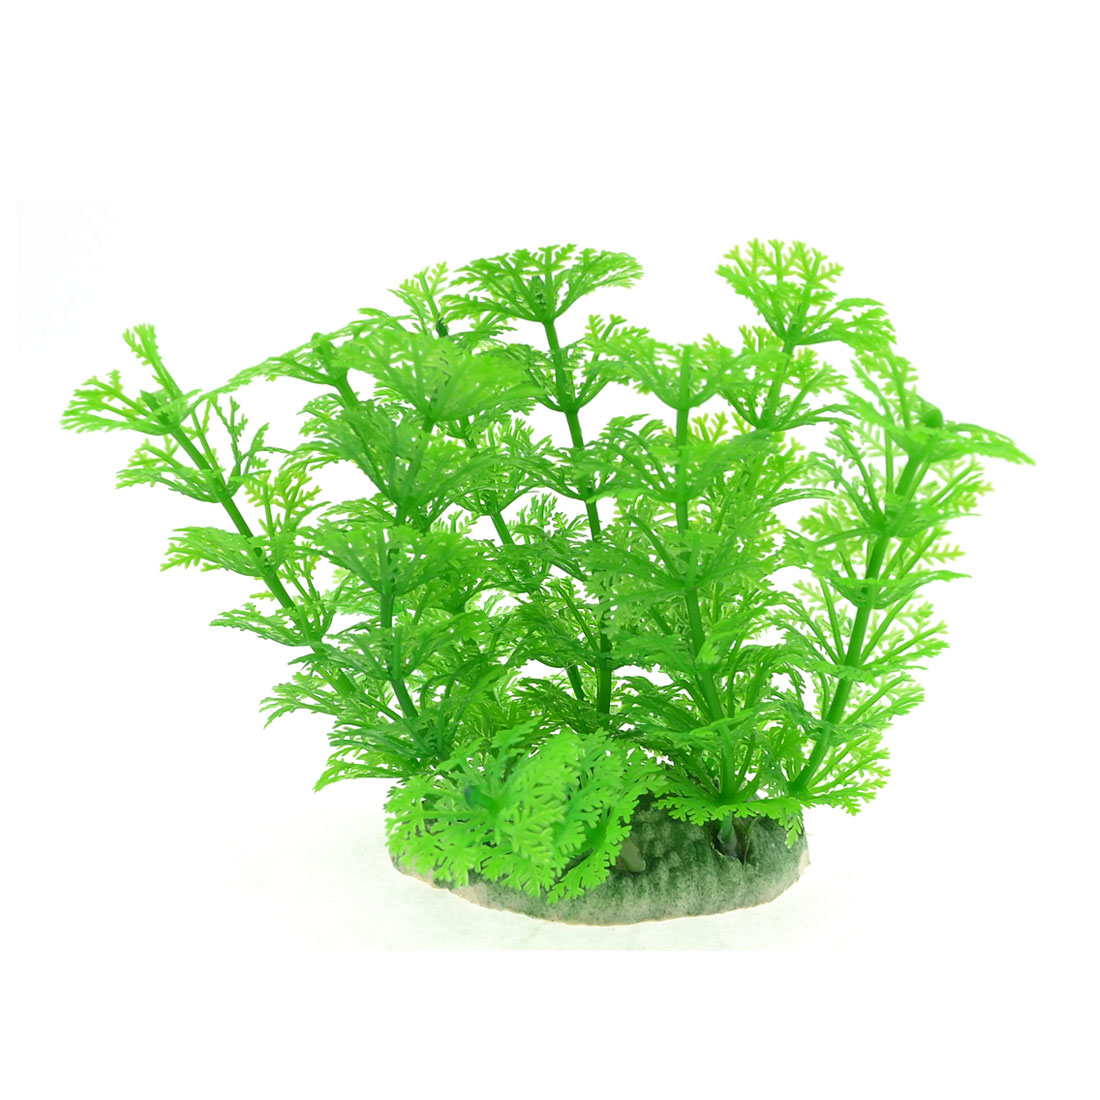 10cm Height Green Snow Flower Shaped Artificial Aquarium Decor Grass Plant